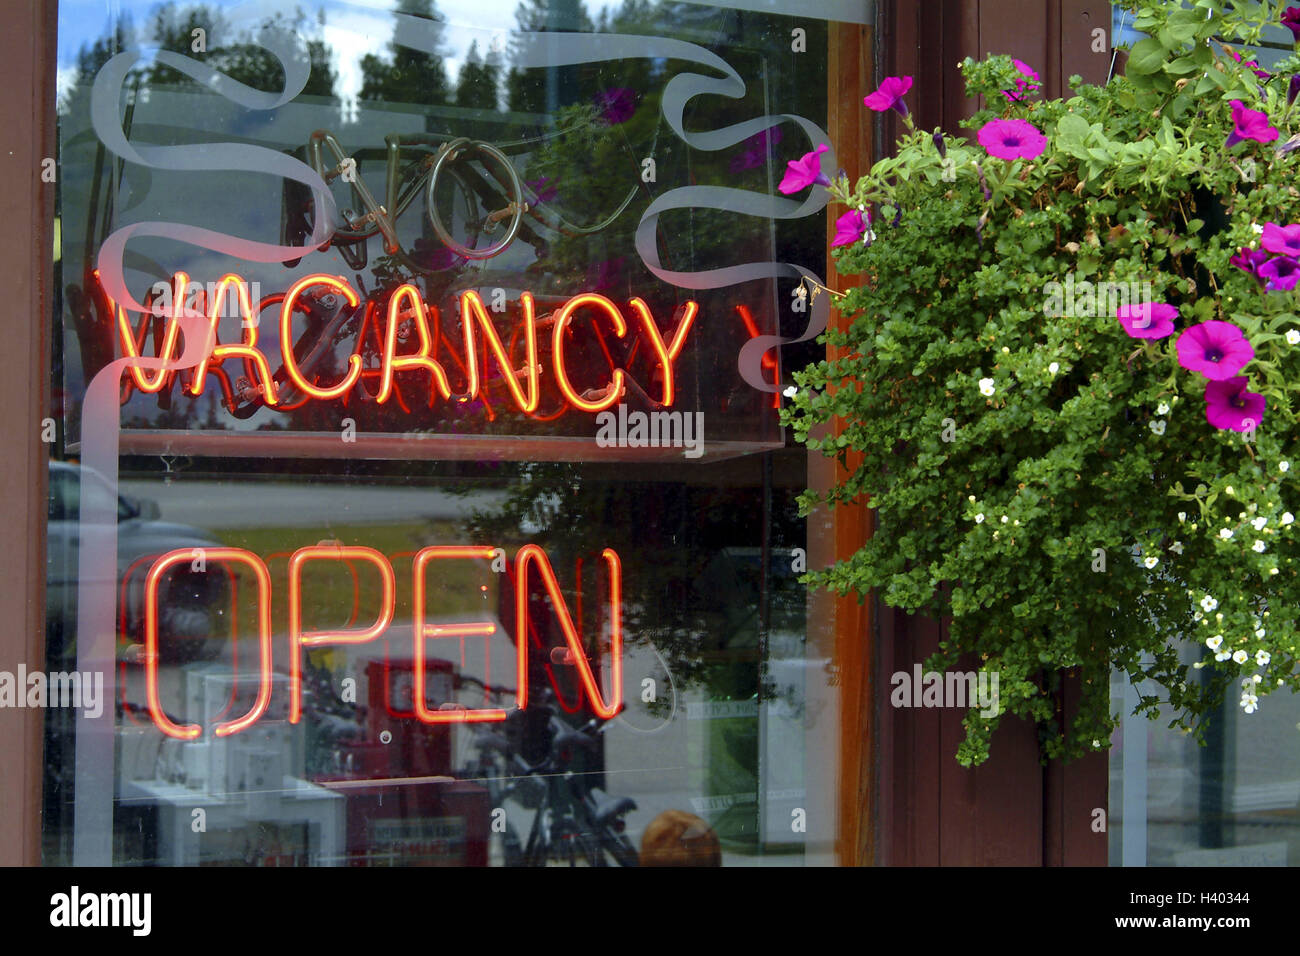 Shop-window, detail, neon writing, 'Vacancy open', North America, Canada, bar, restaurant, restaurant, accomodation, - Stock Image